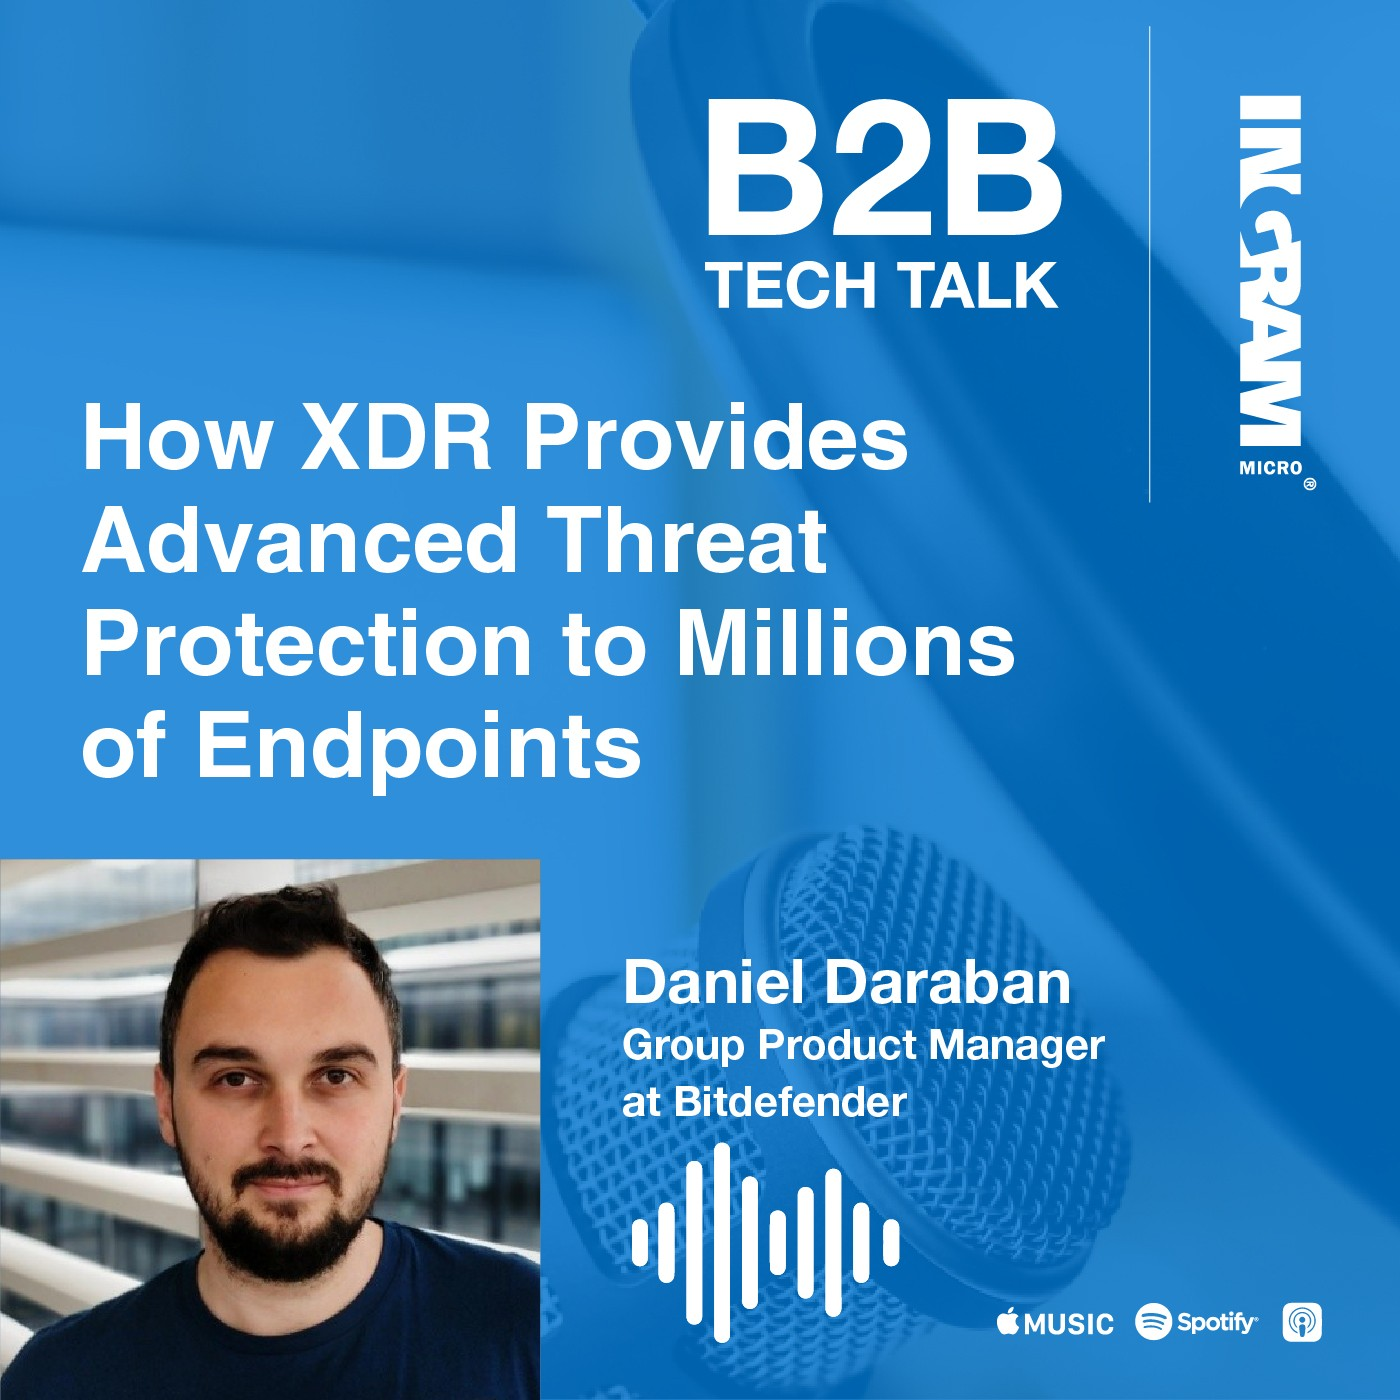 How XDR Provides Advanced Threat Protection to Millions of Endpoints Worldwide